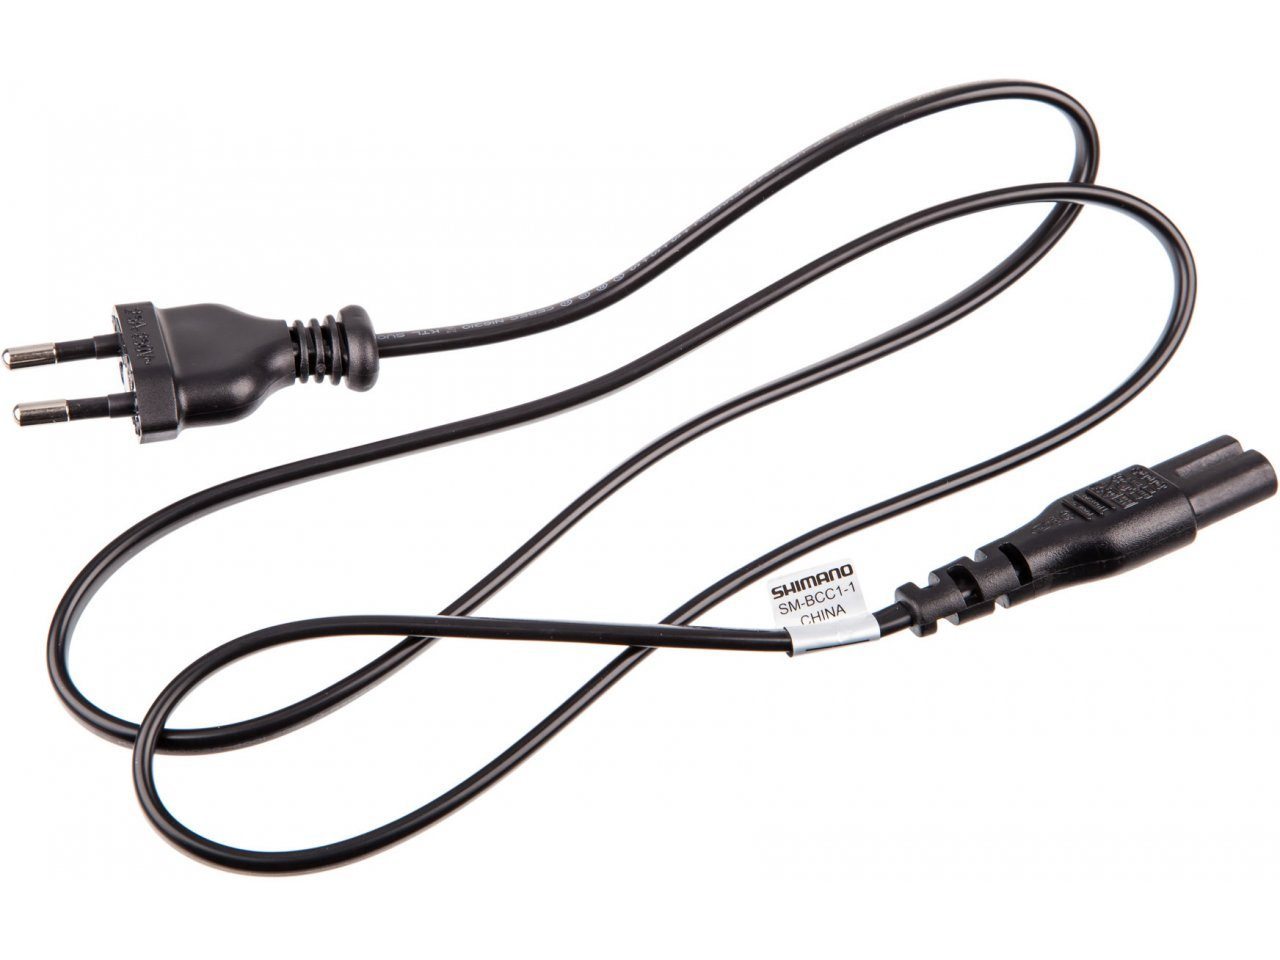 Shimano SMBCC1-1 Battery Charger Power Cable for Di2 Battery Charger